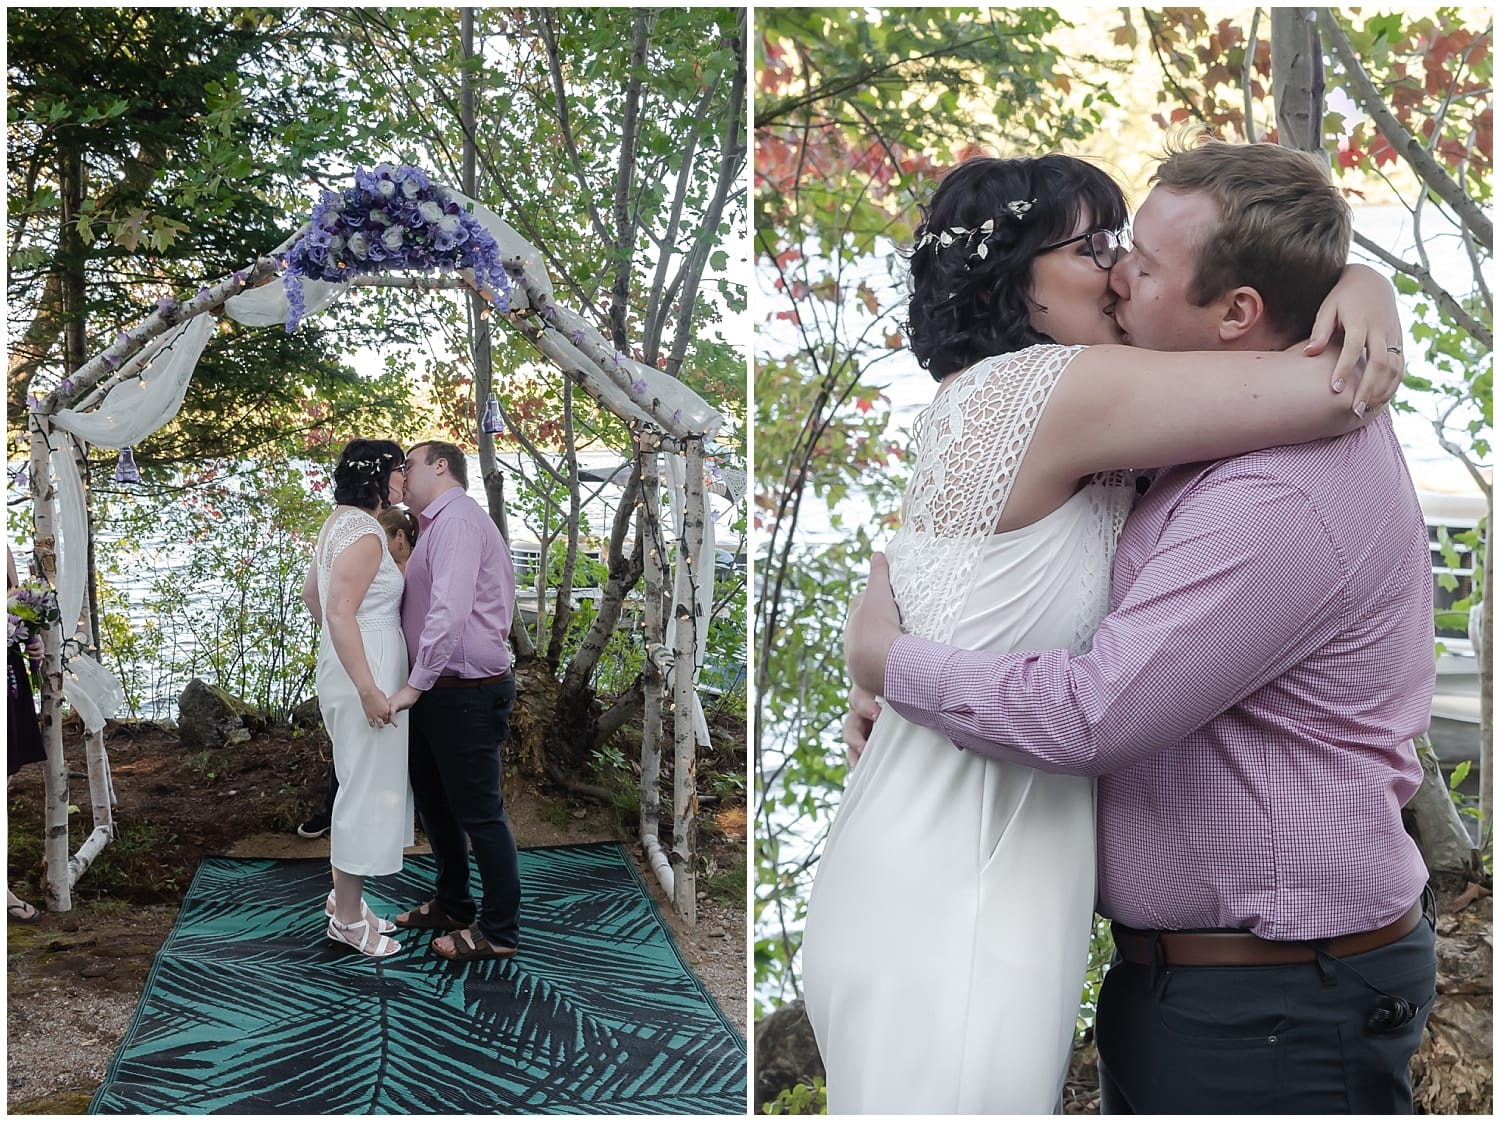 The bride and groom have their first kiss during their covid intimate wedding ceremony in Hubbards NS.